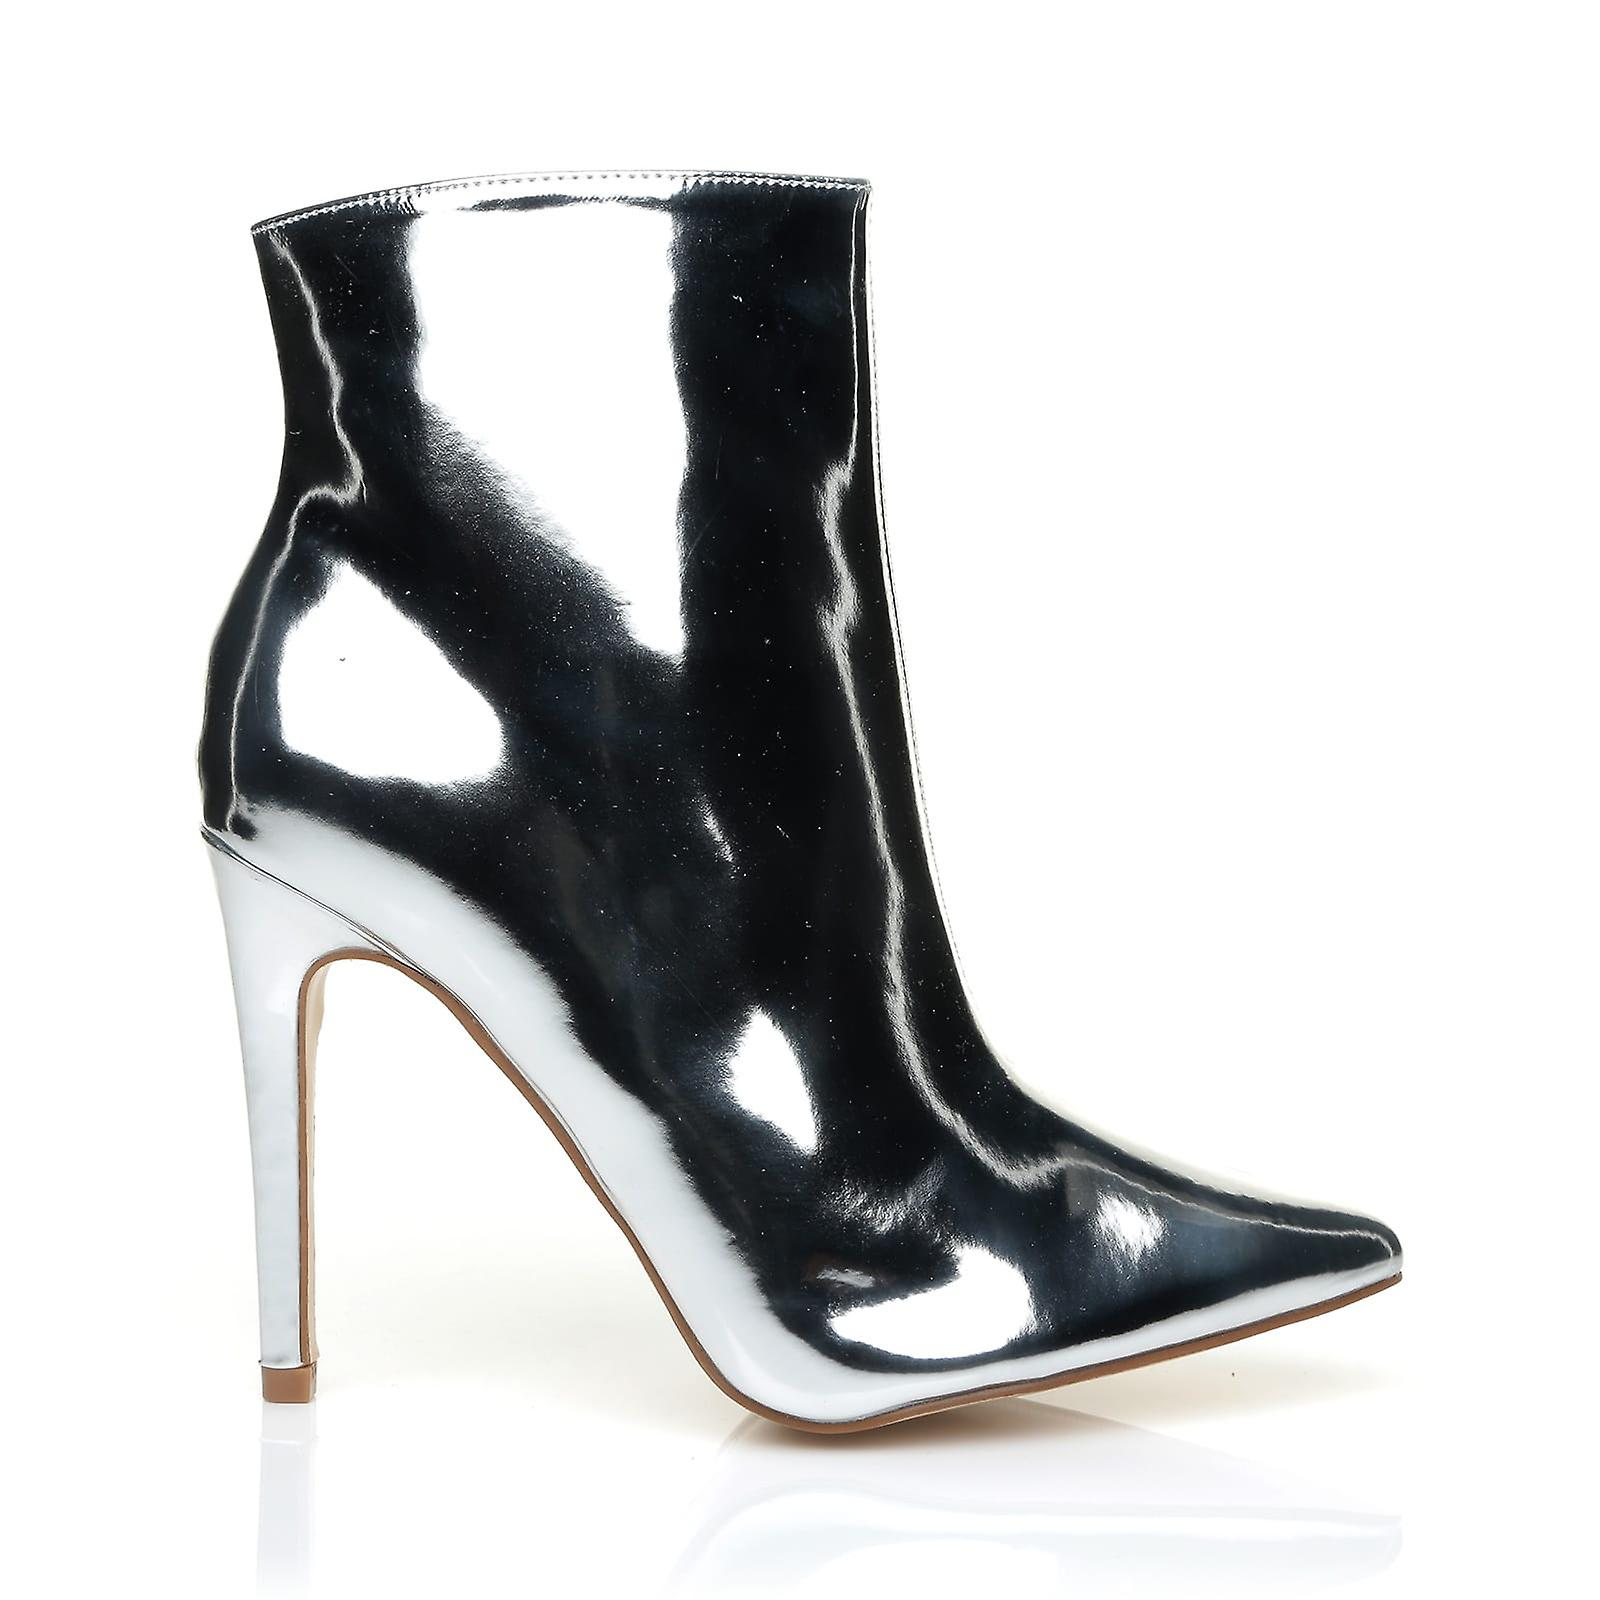 DISCO Chrome Silver Mirror Metallic High Heel Pointed Ankle Boots